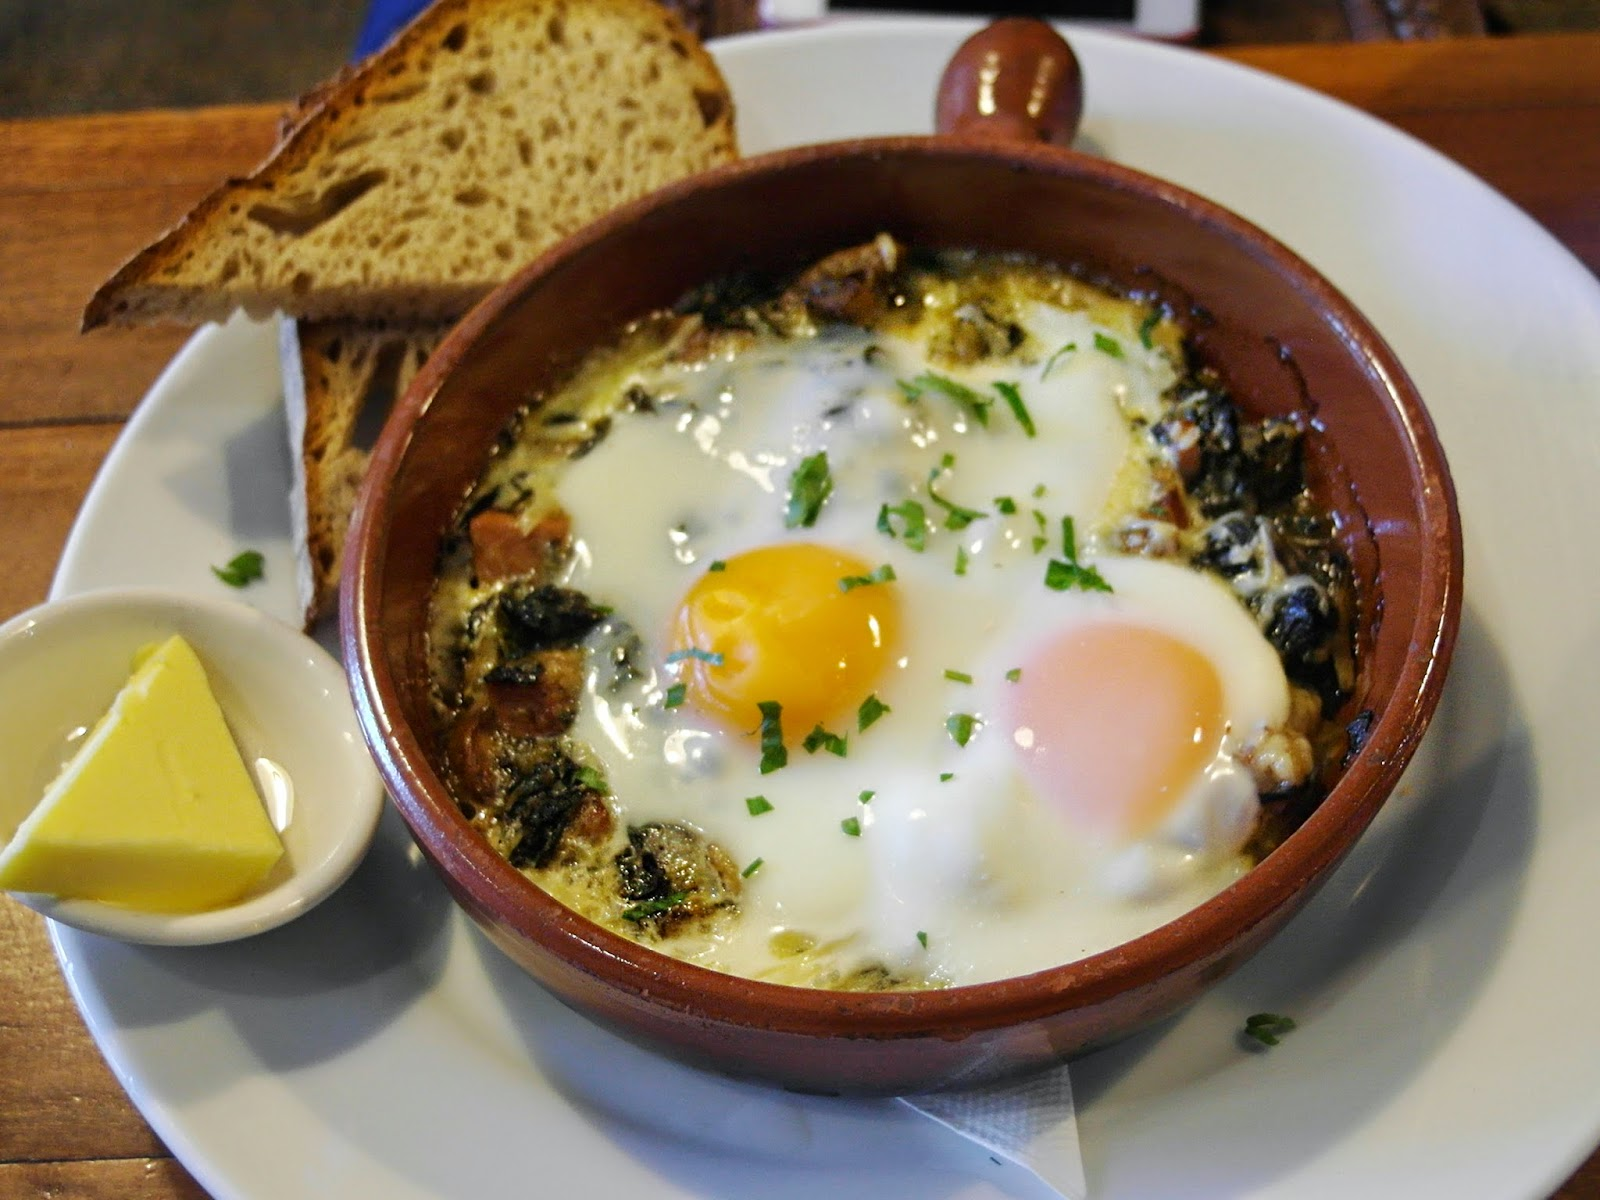 ... , spinach and leek baked eggs with mushroom, parmesan and sourdough